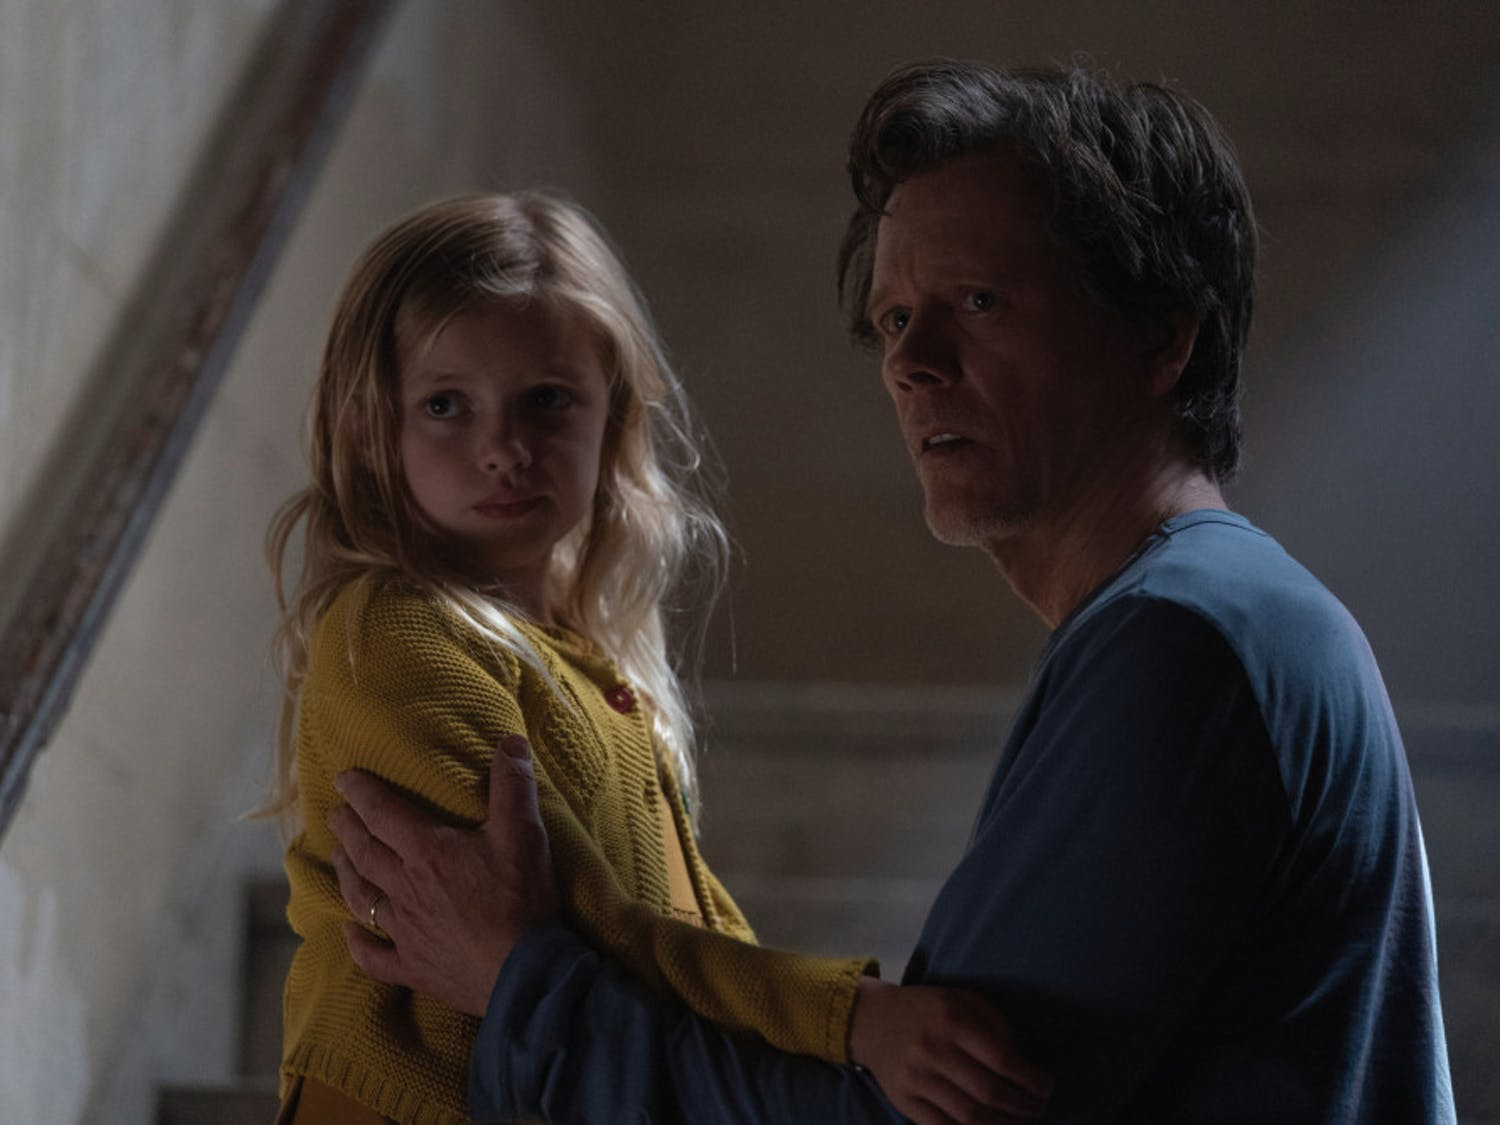 """Ella Conroy (Avery Essex) and Theo Conroy (Kevin Bacon) in """"You Should Have Left,"""" written and directed by David Koepp."""